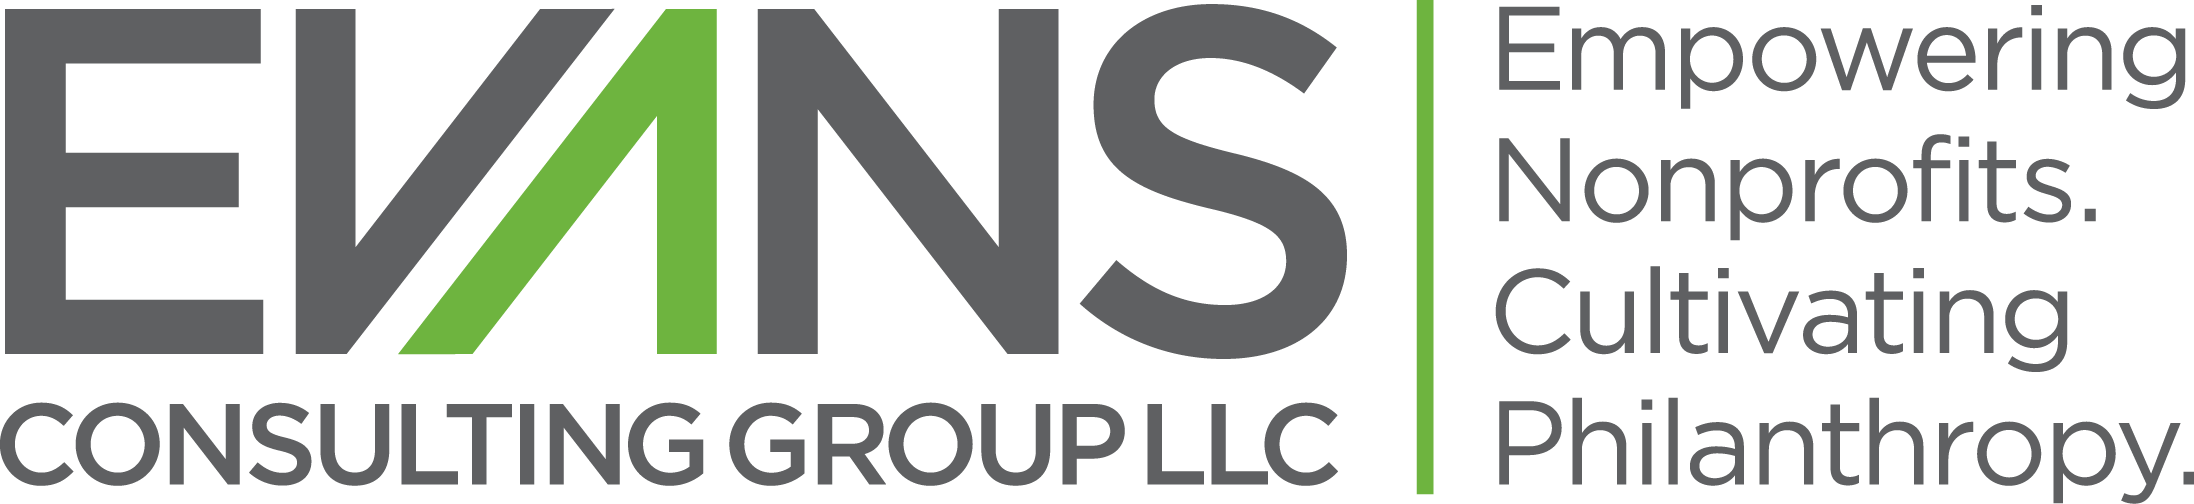 Evans Consulting Group, LLC Logo